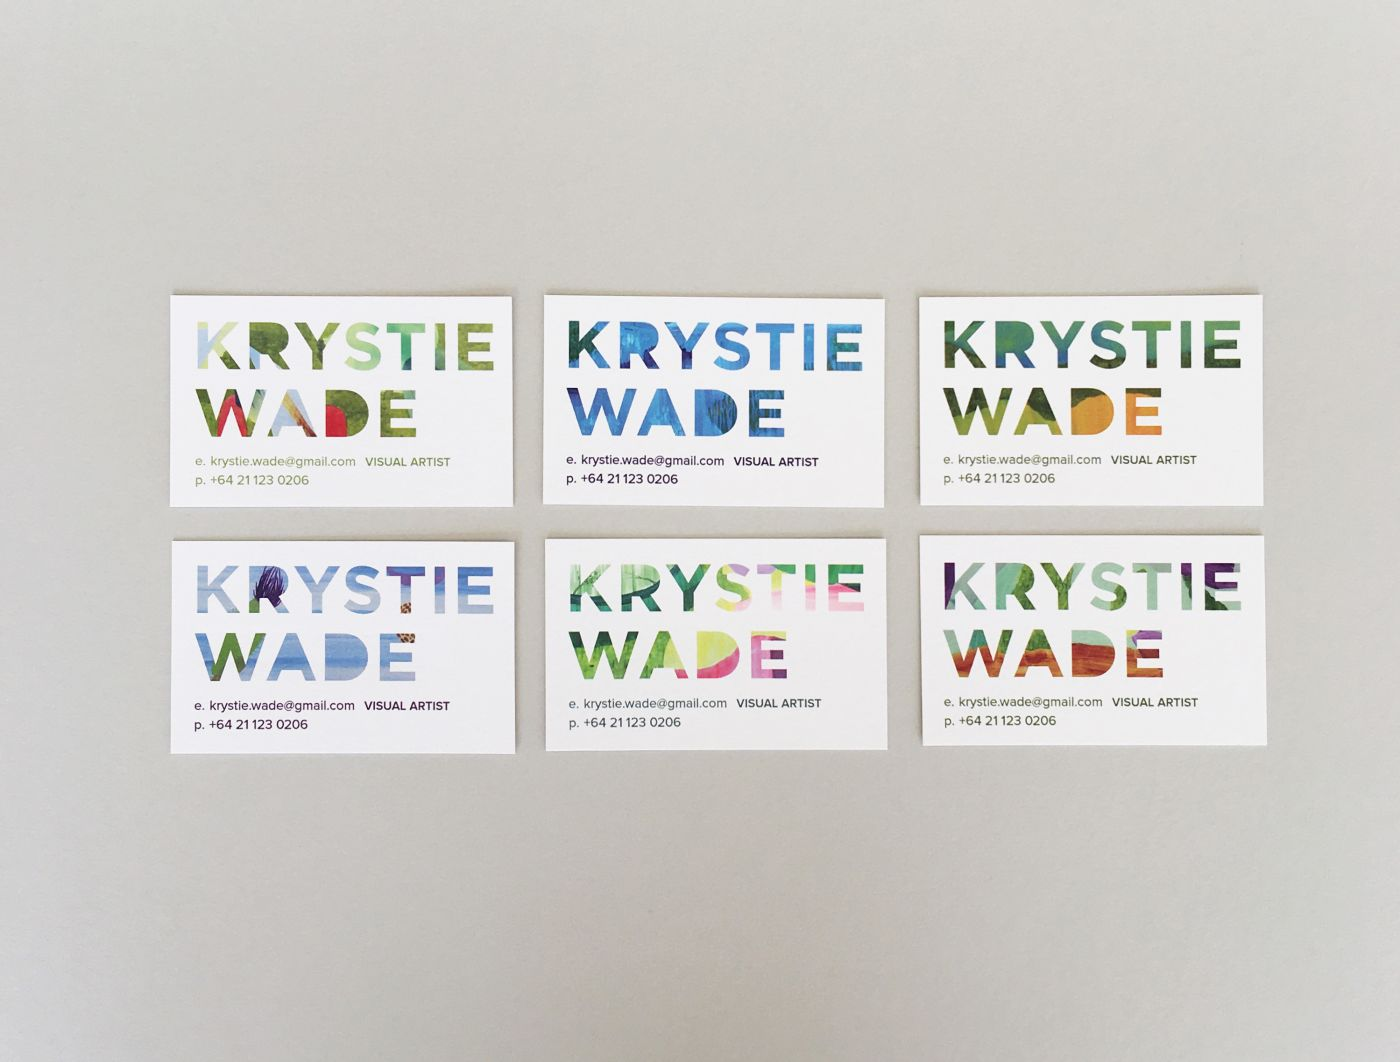 Krystie Wade Business Cards